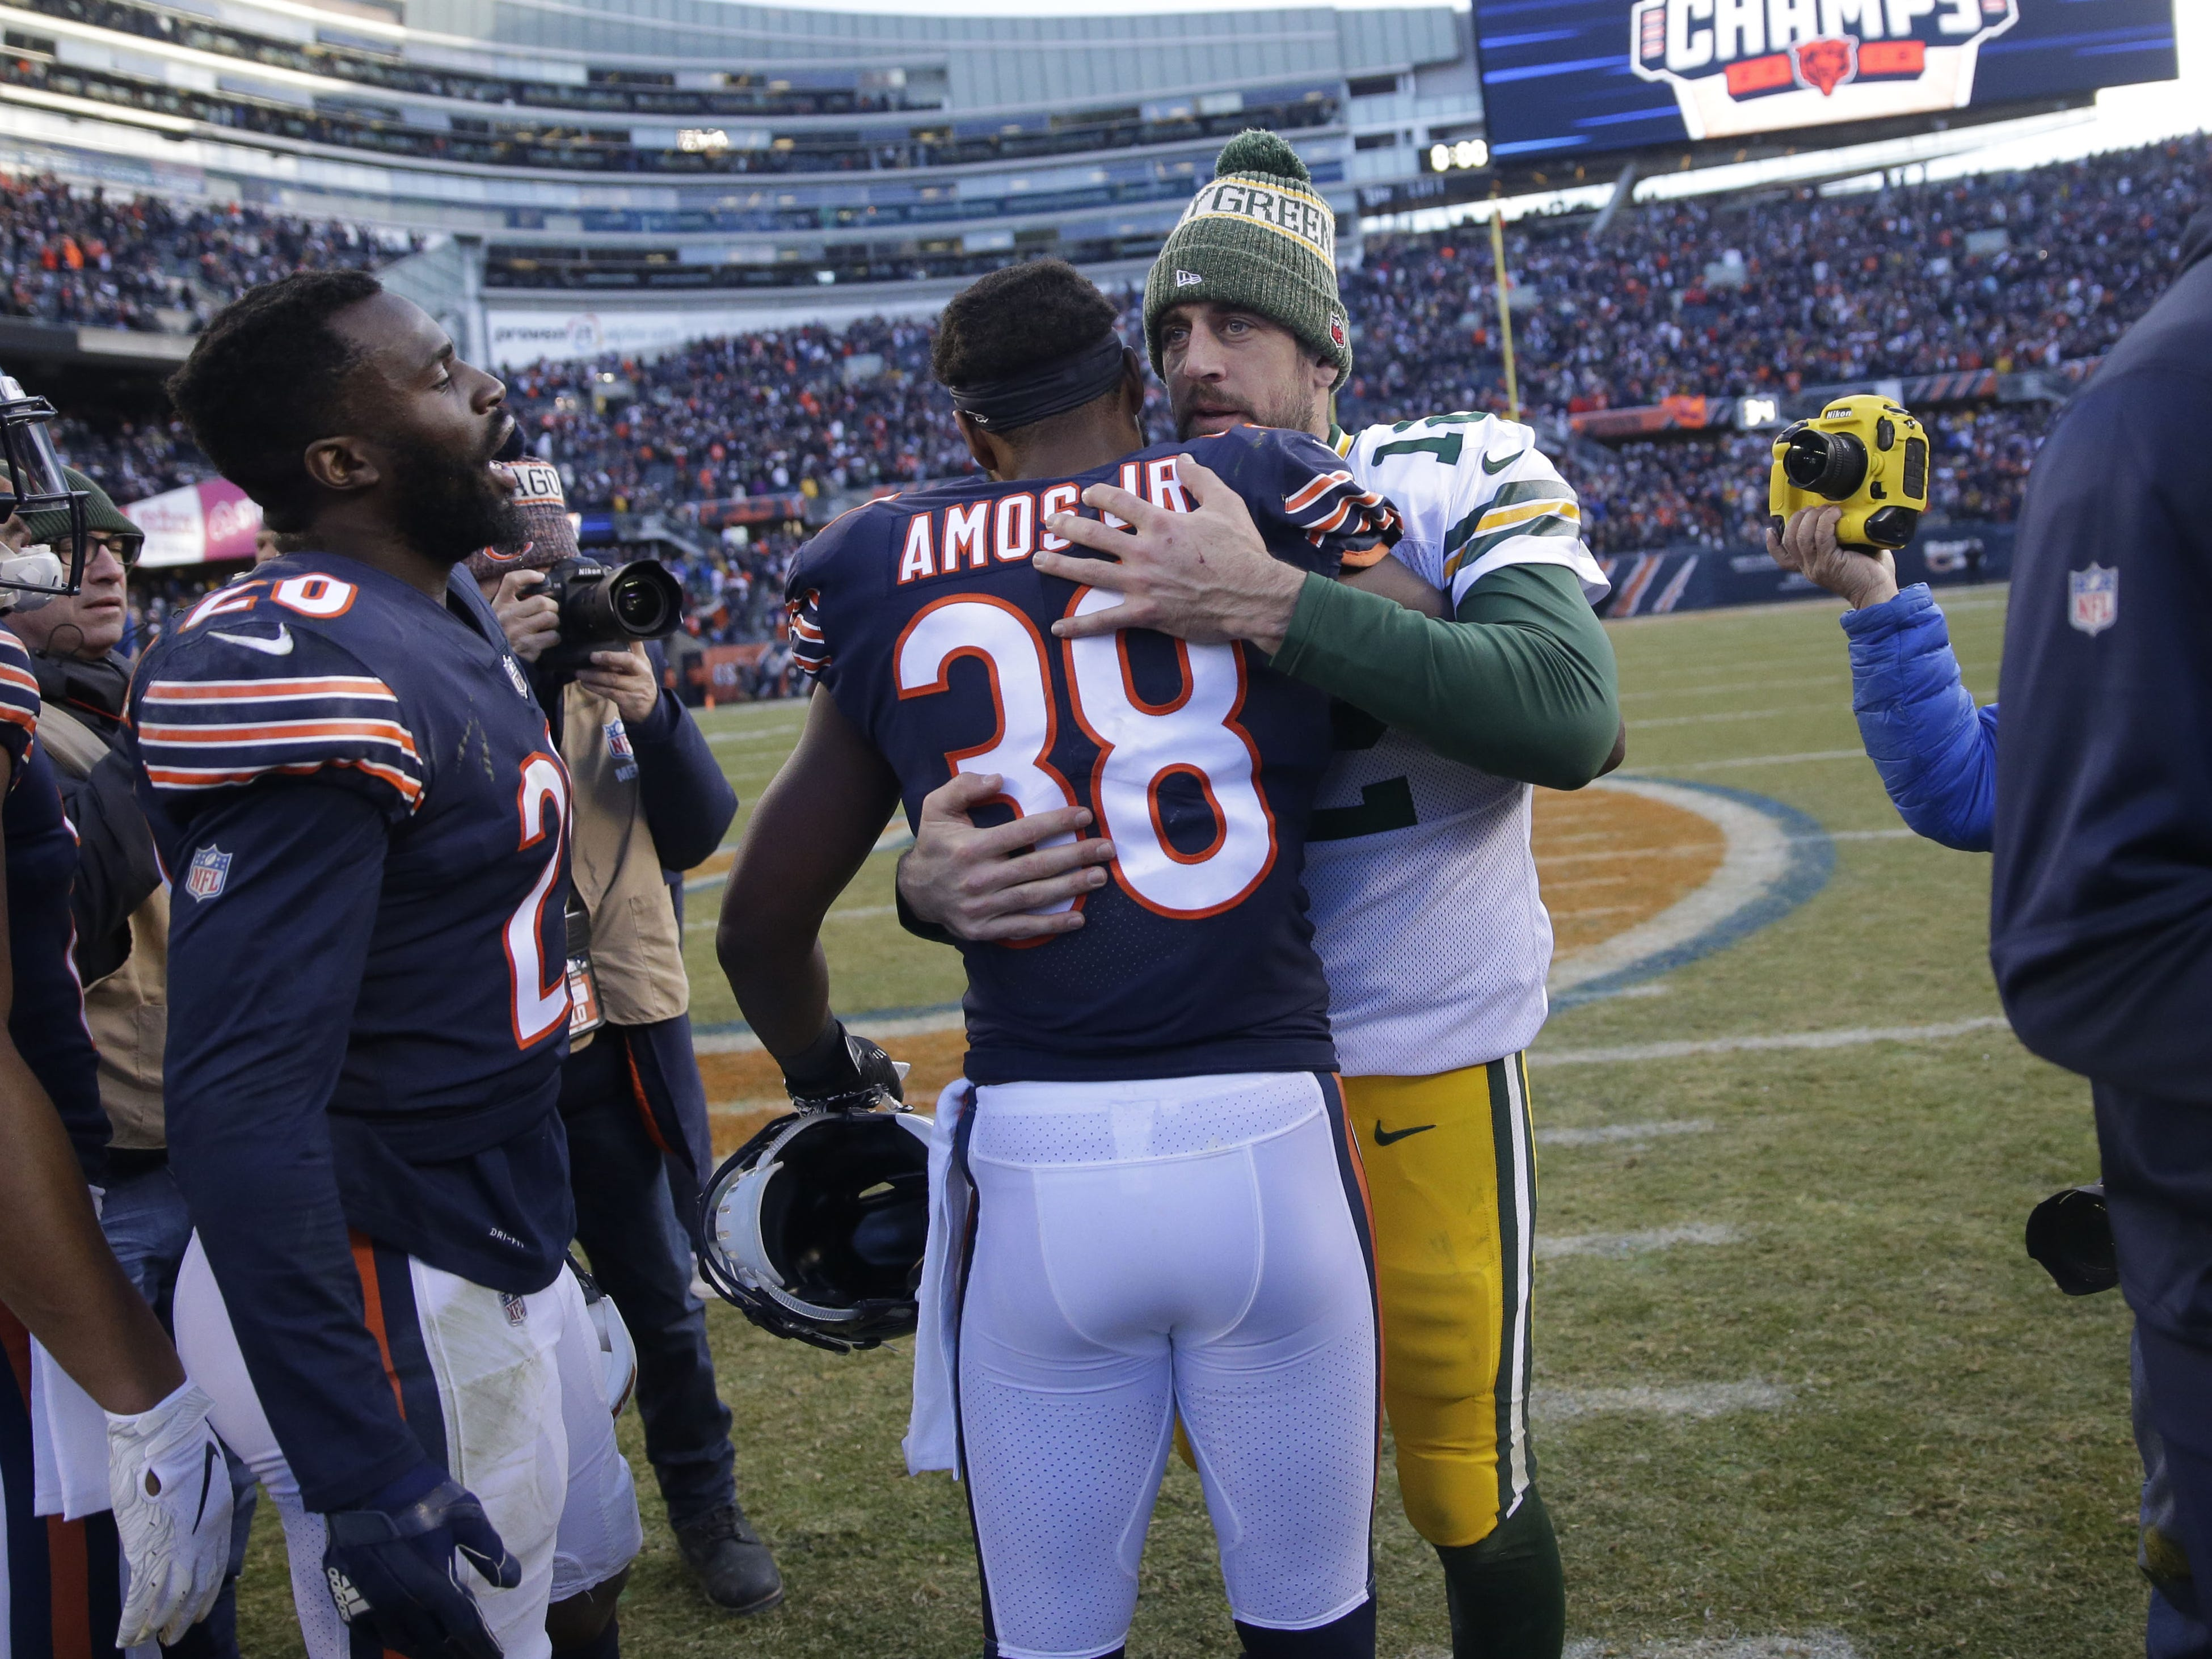 Green Bay Packers' Aaron Rodgers greets Chicago Bears' Adrian Amos  after the 2nd half of the Green Bay Packers 24-17 loss to the Chicago Bears at Soldier Field Sunday, Dec. 16, 2018, in Chicago. Photo by Mike De Sisti / The Milwaukee Journal Sentinel